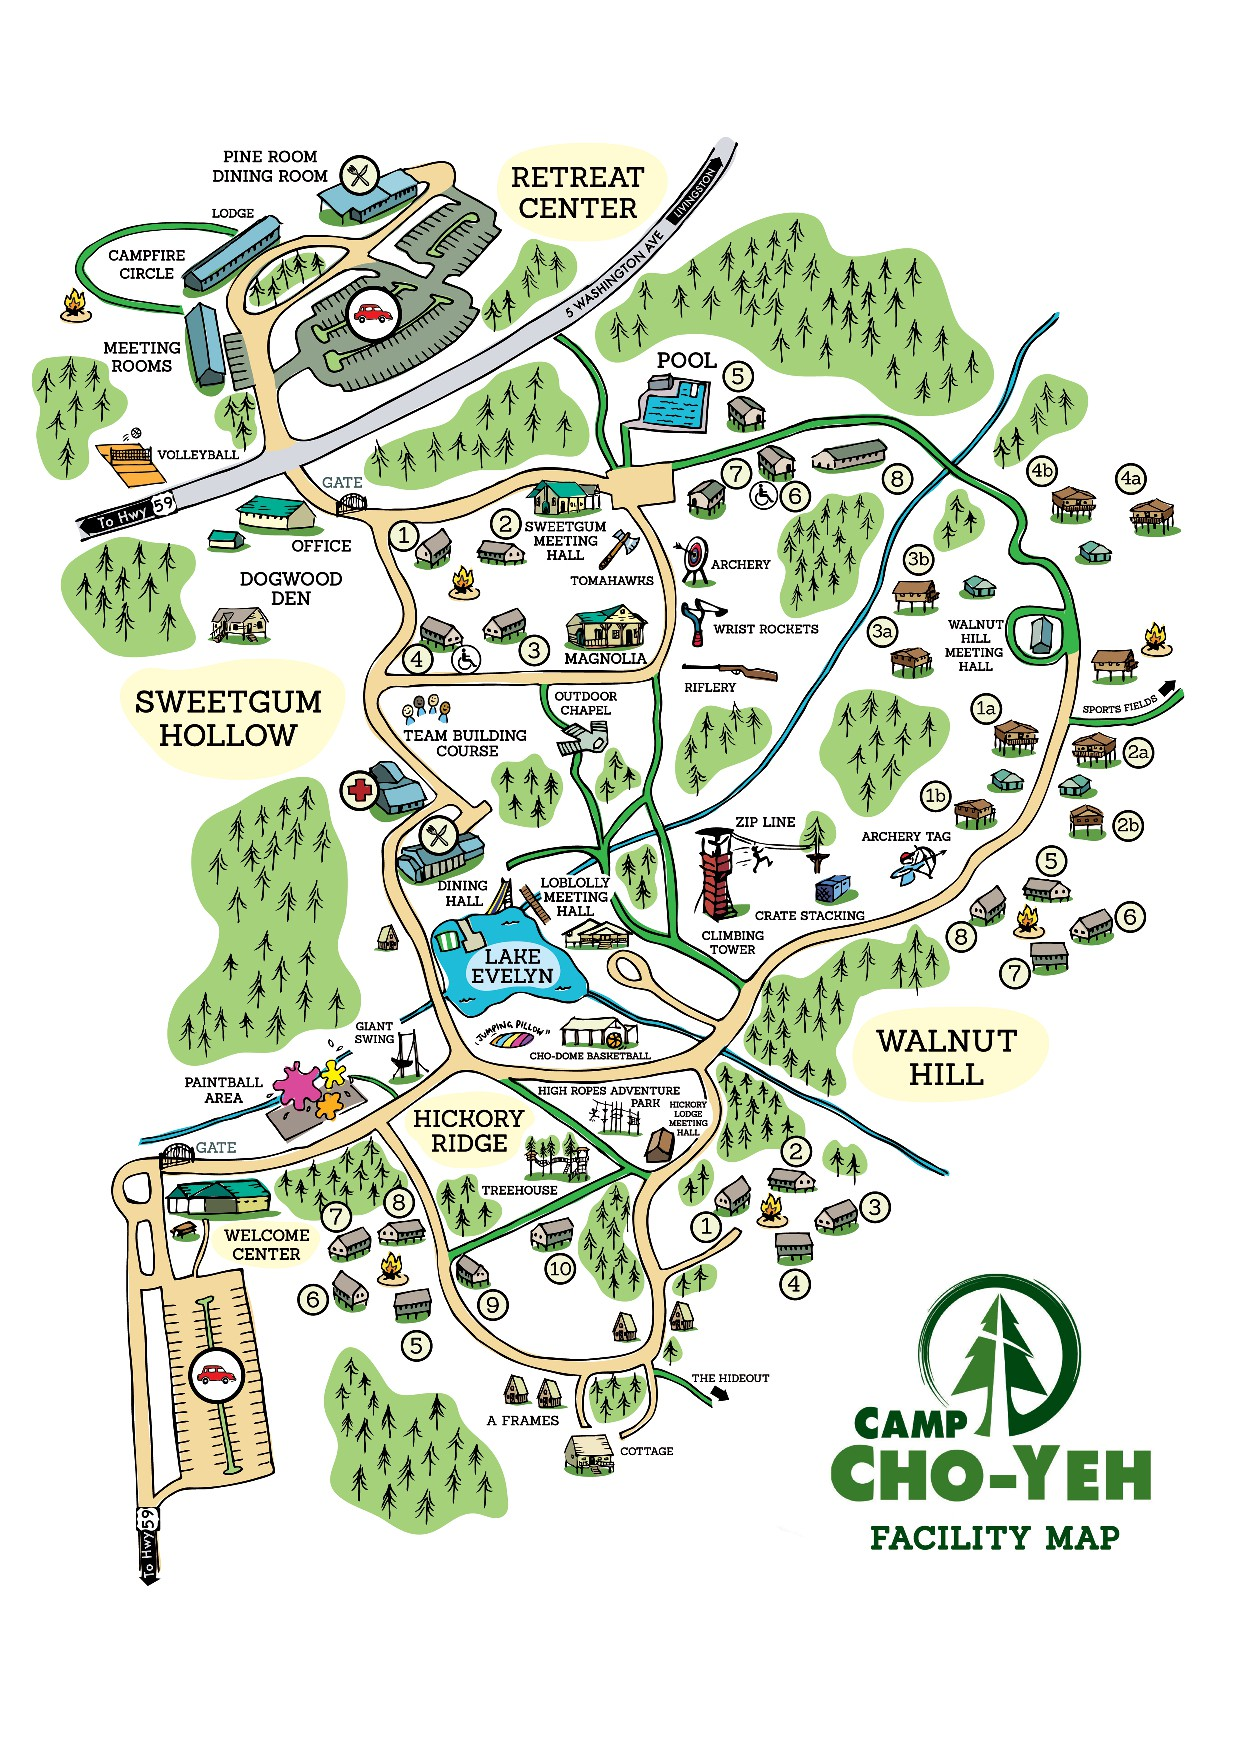 Create a detailed facility map for a large youth camp